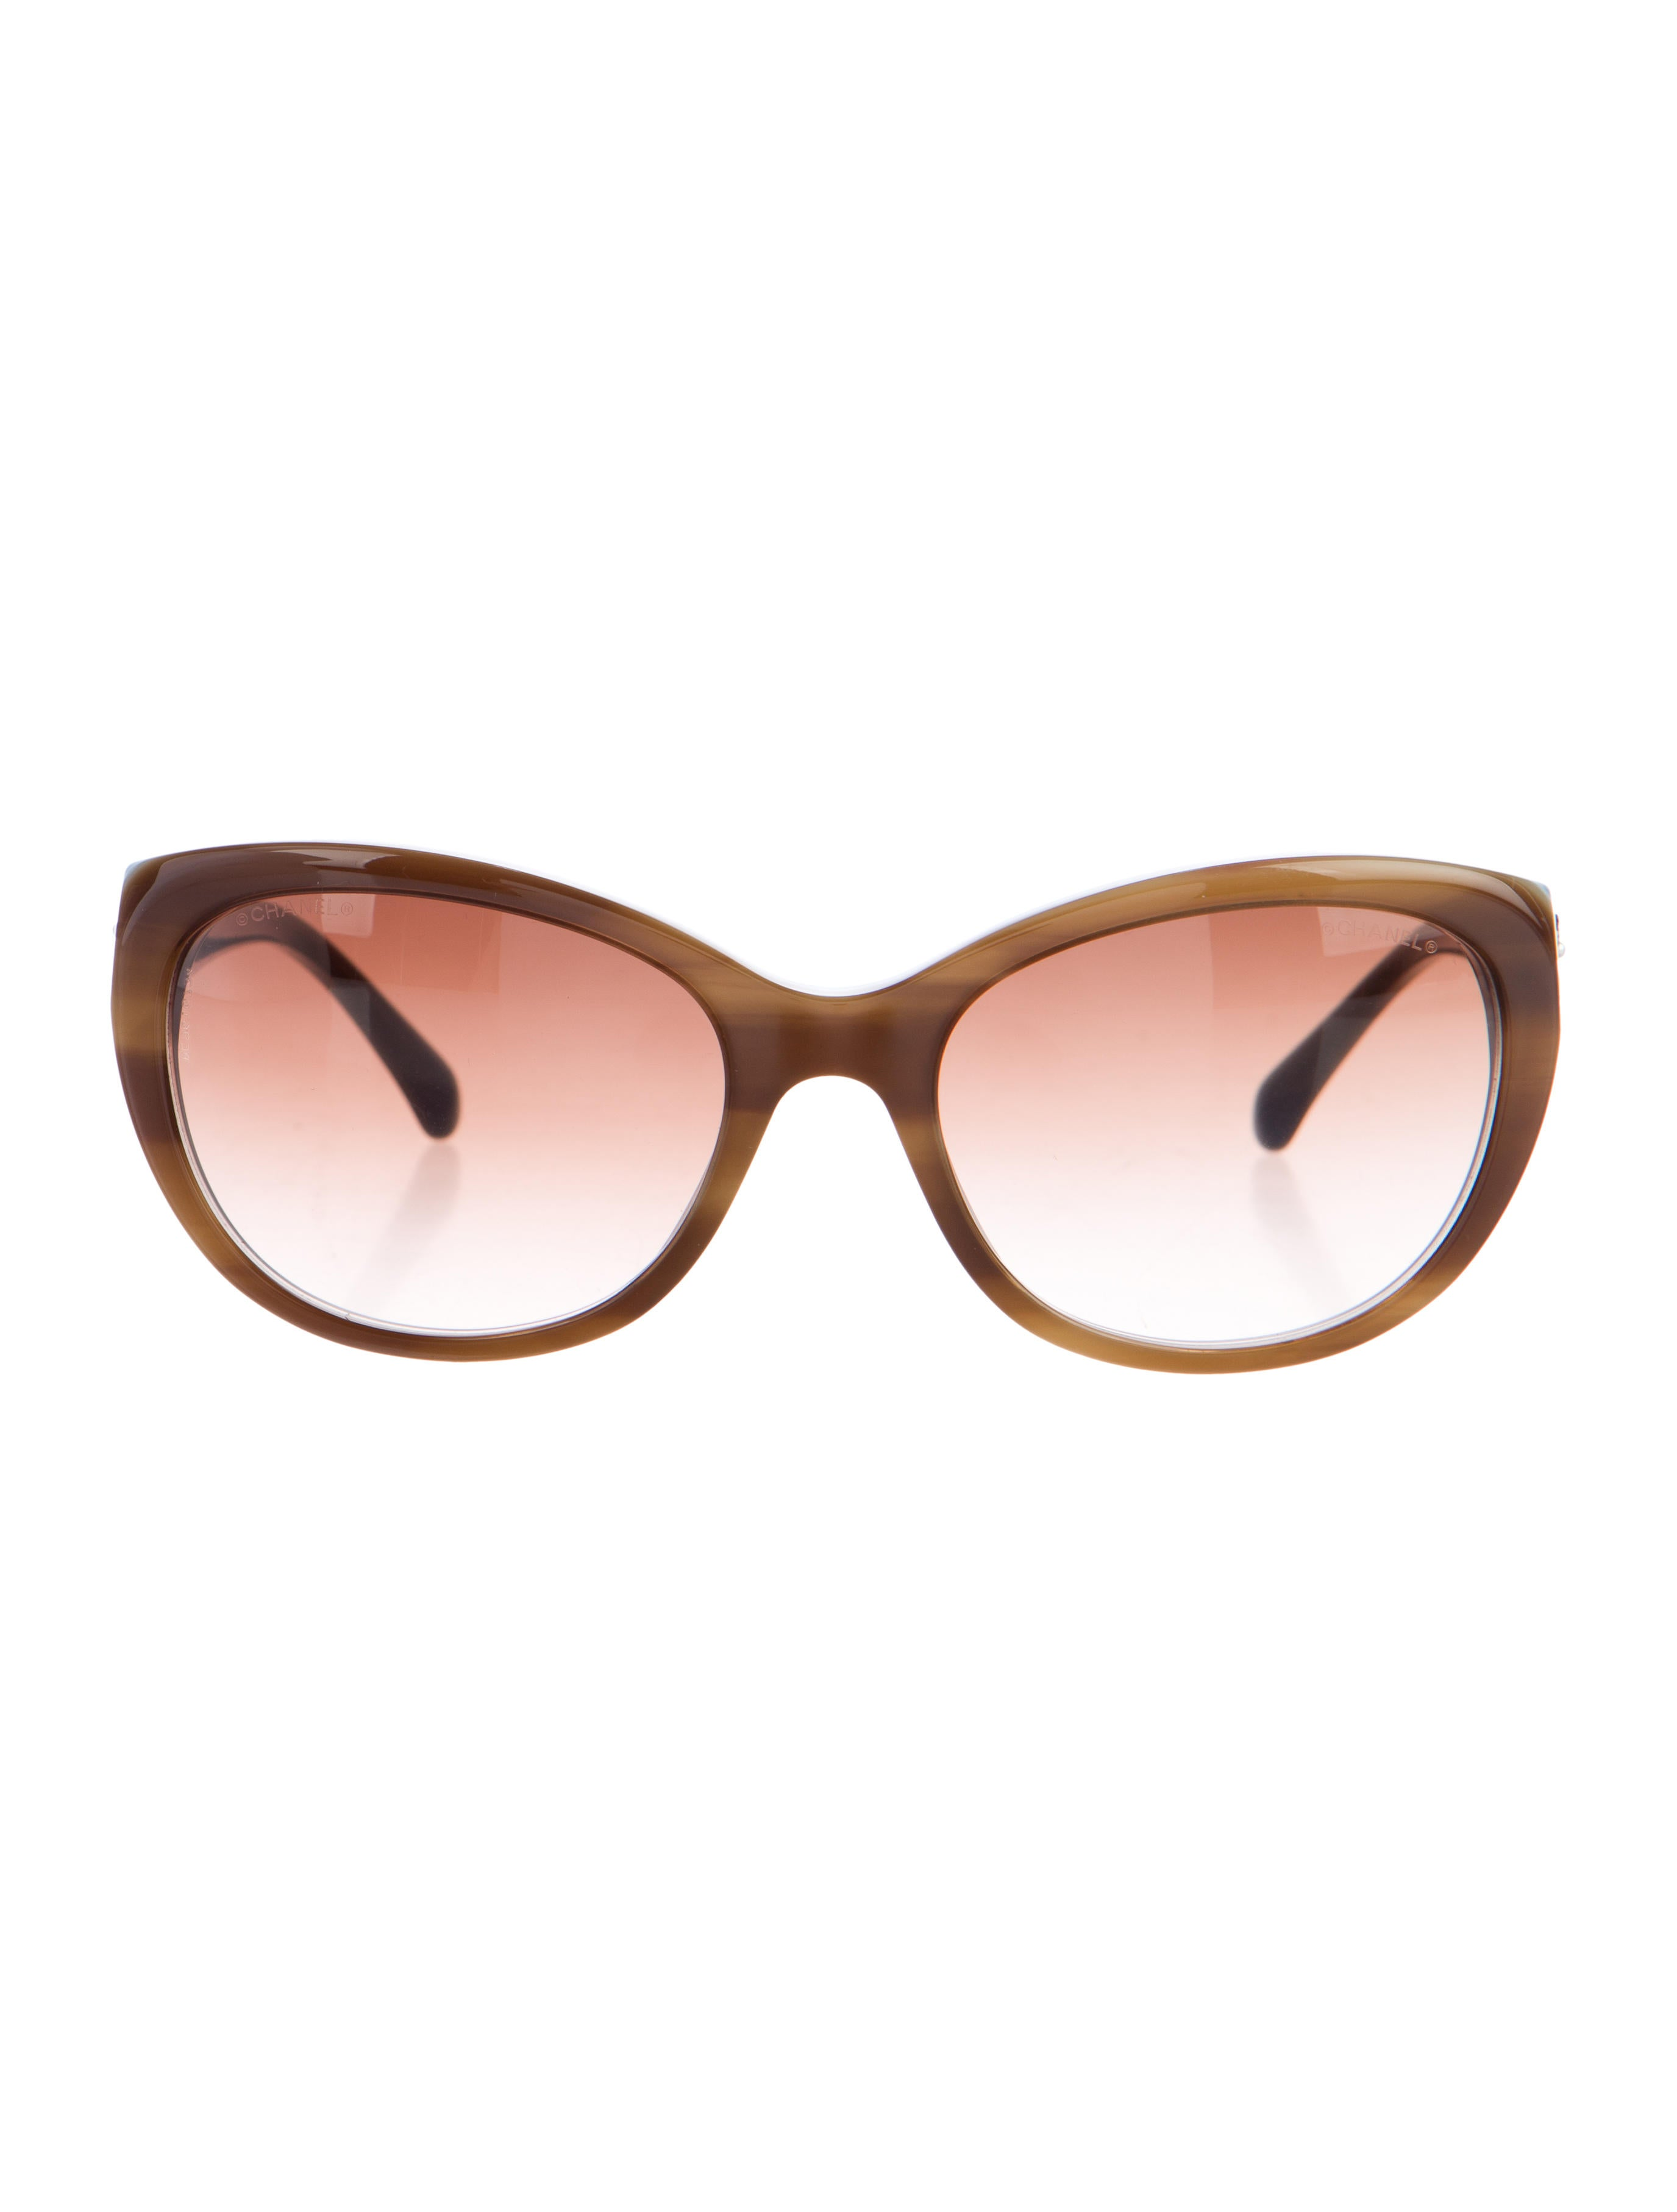 29587cc1963c Chanel Cat Eye Sunglasses Saks